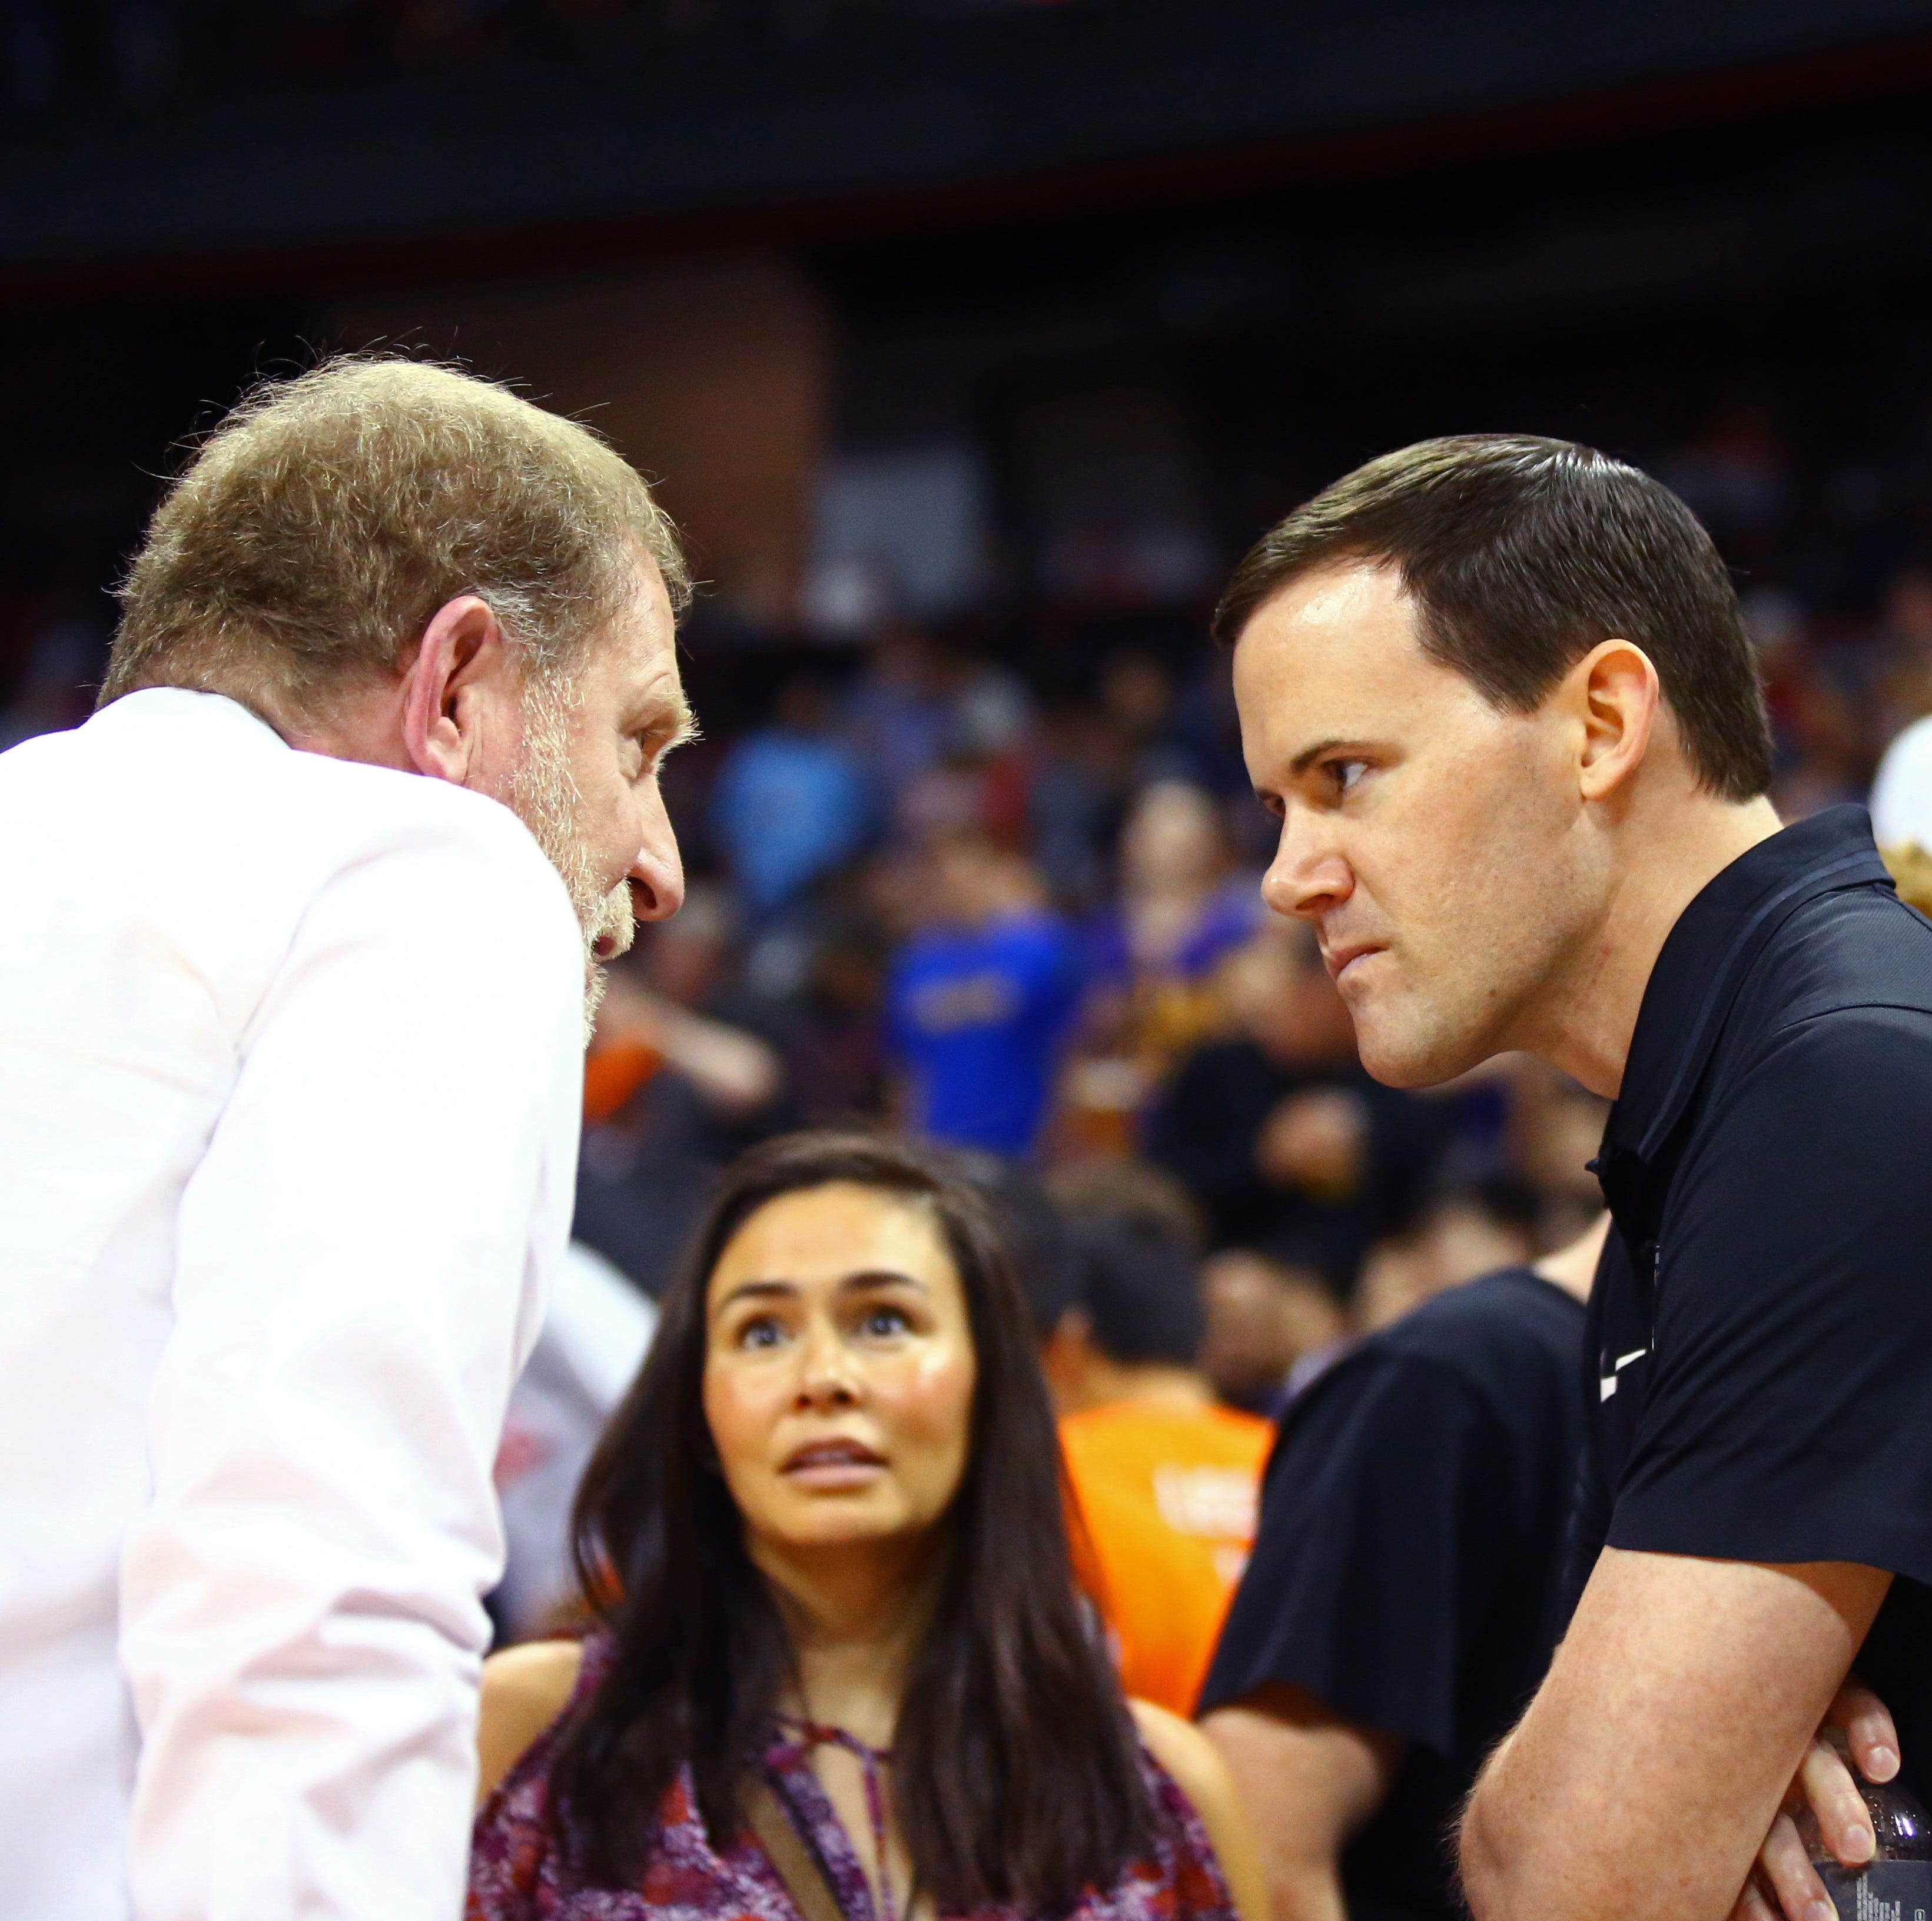 Suns owner Robert Sarver put goats in Ryan McDonough's office to inspire, report says